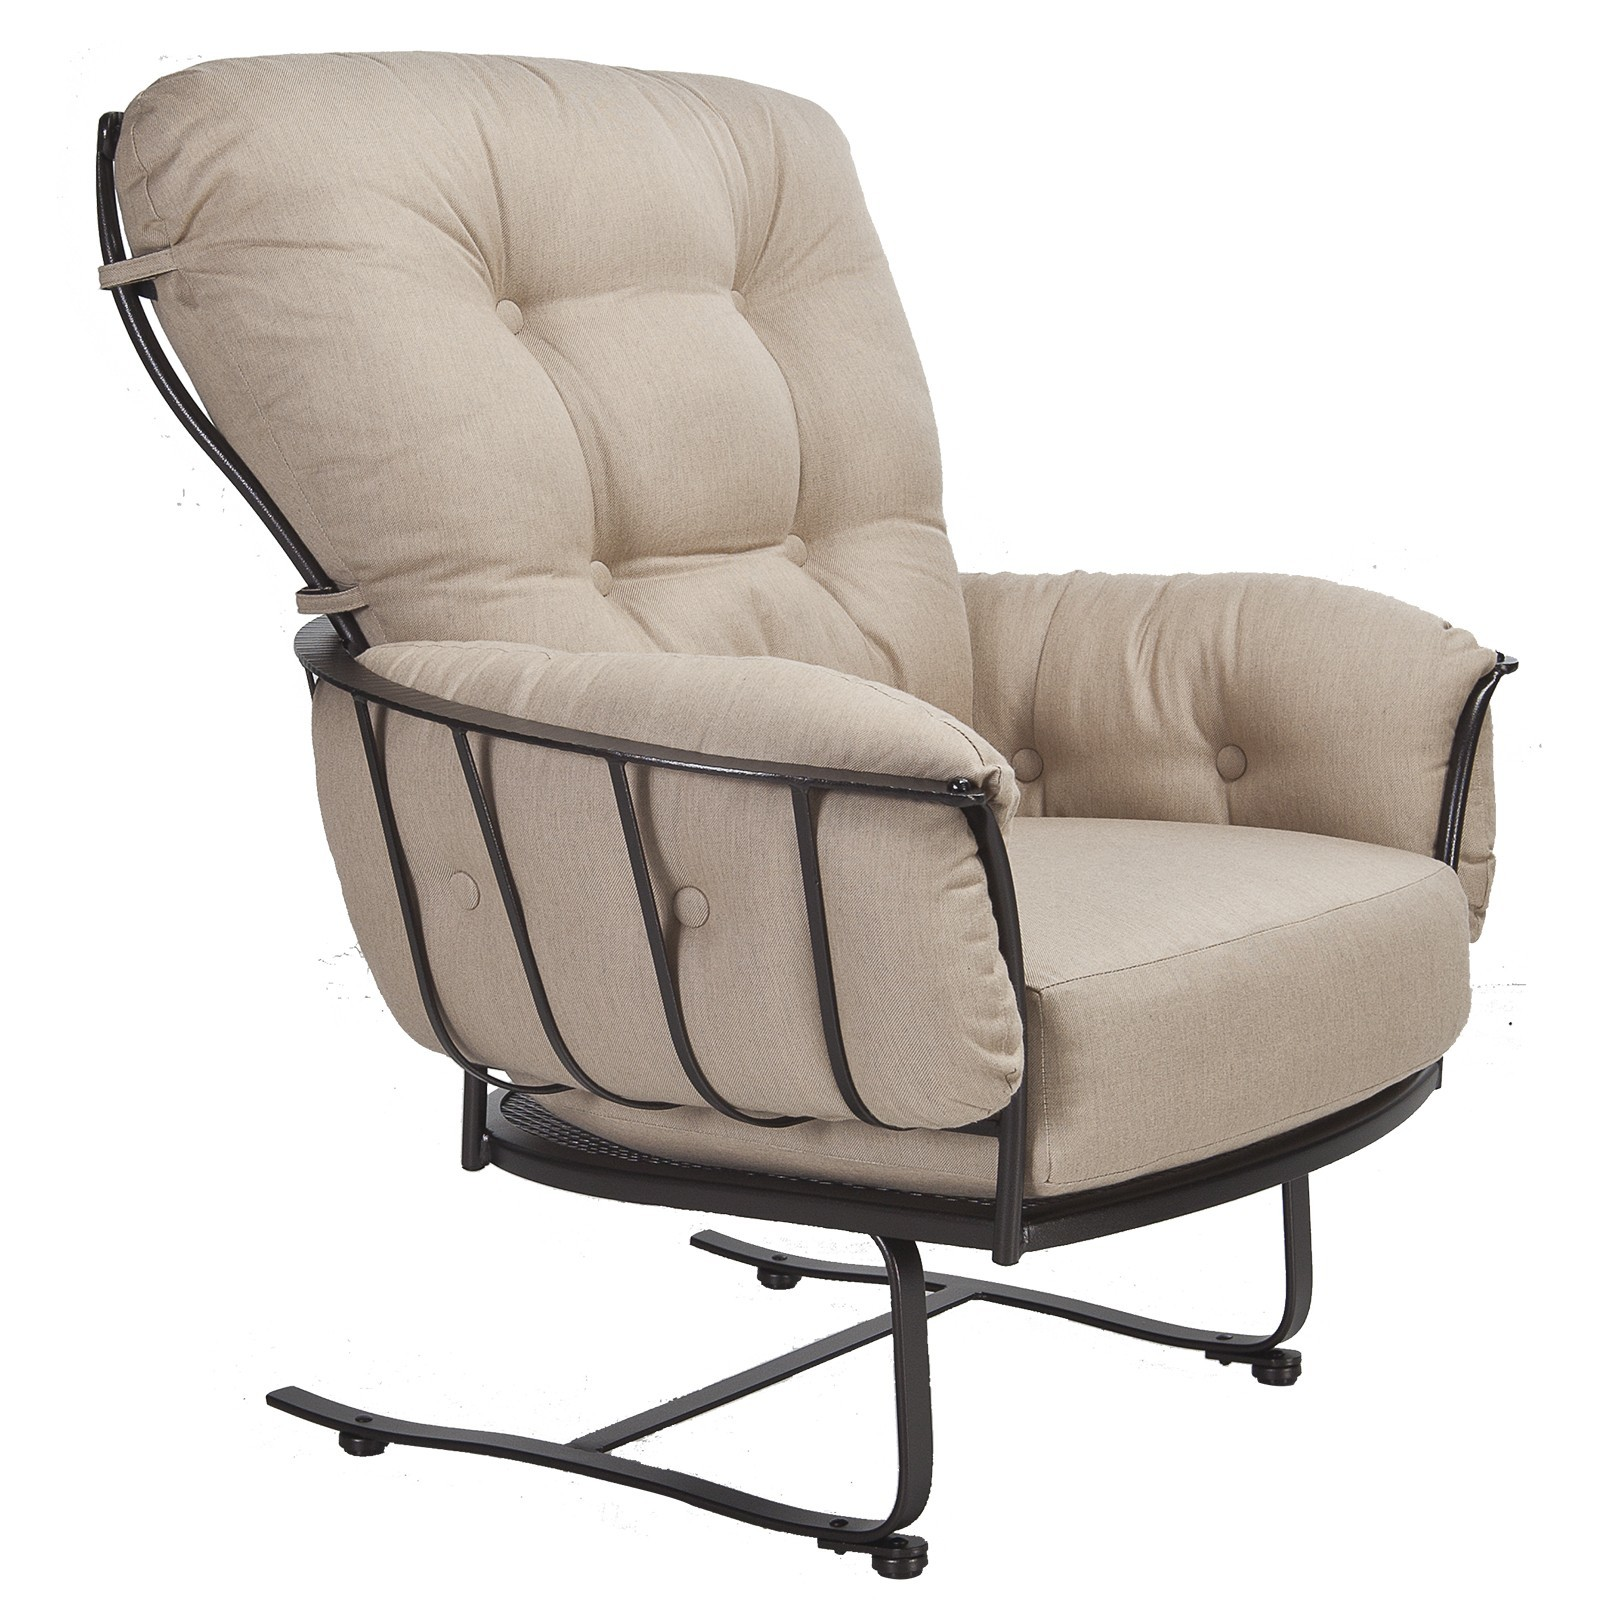 Spring Chair Monterra Spring Base Lounge Chair